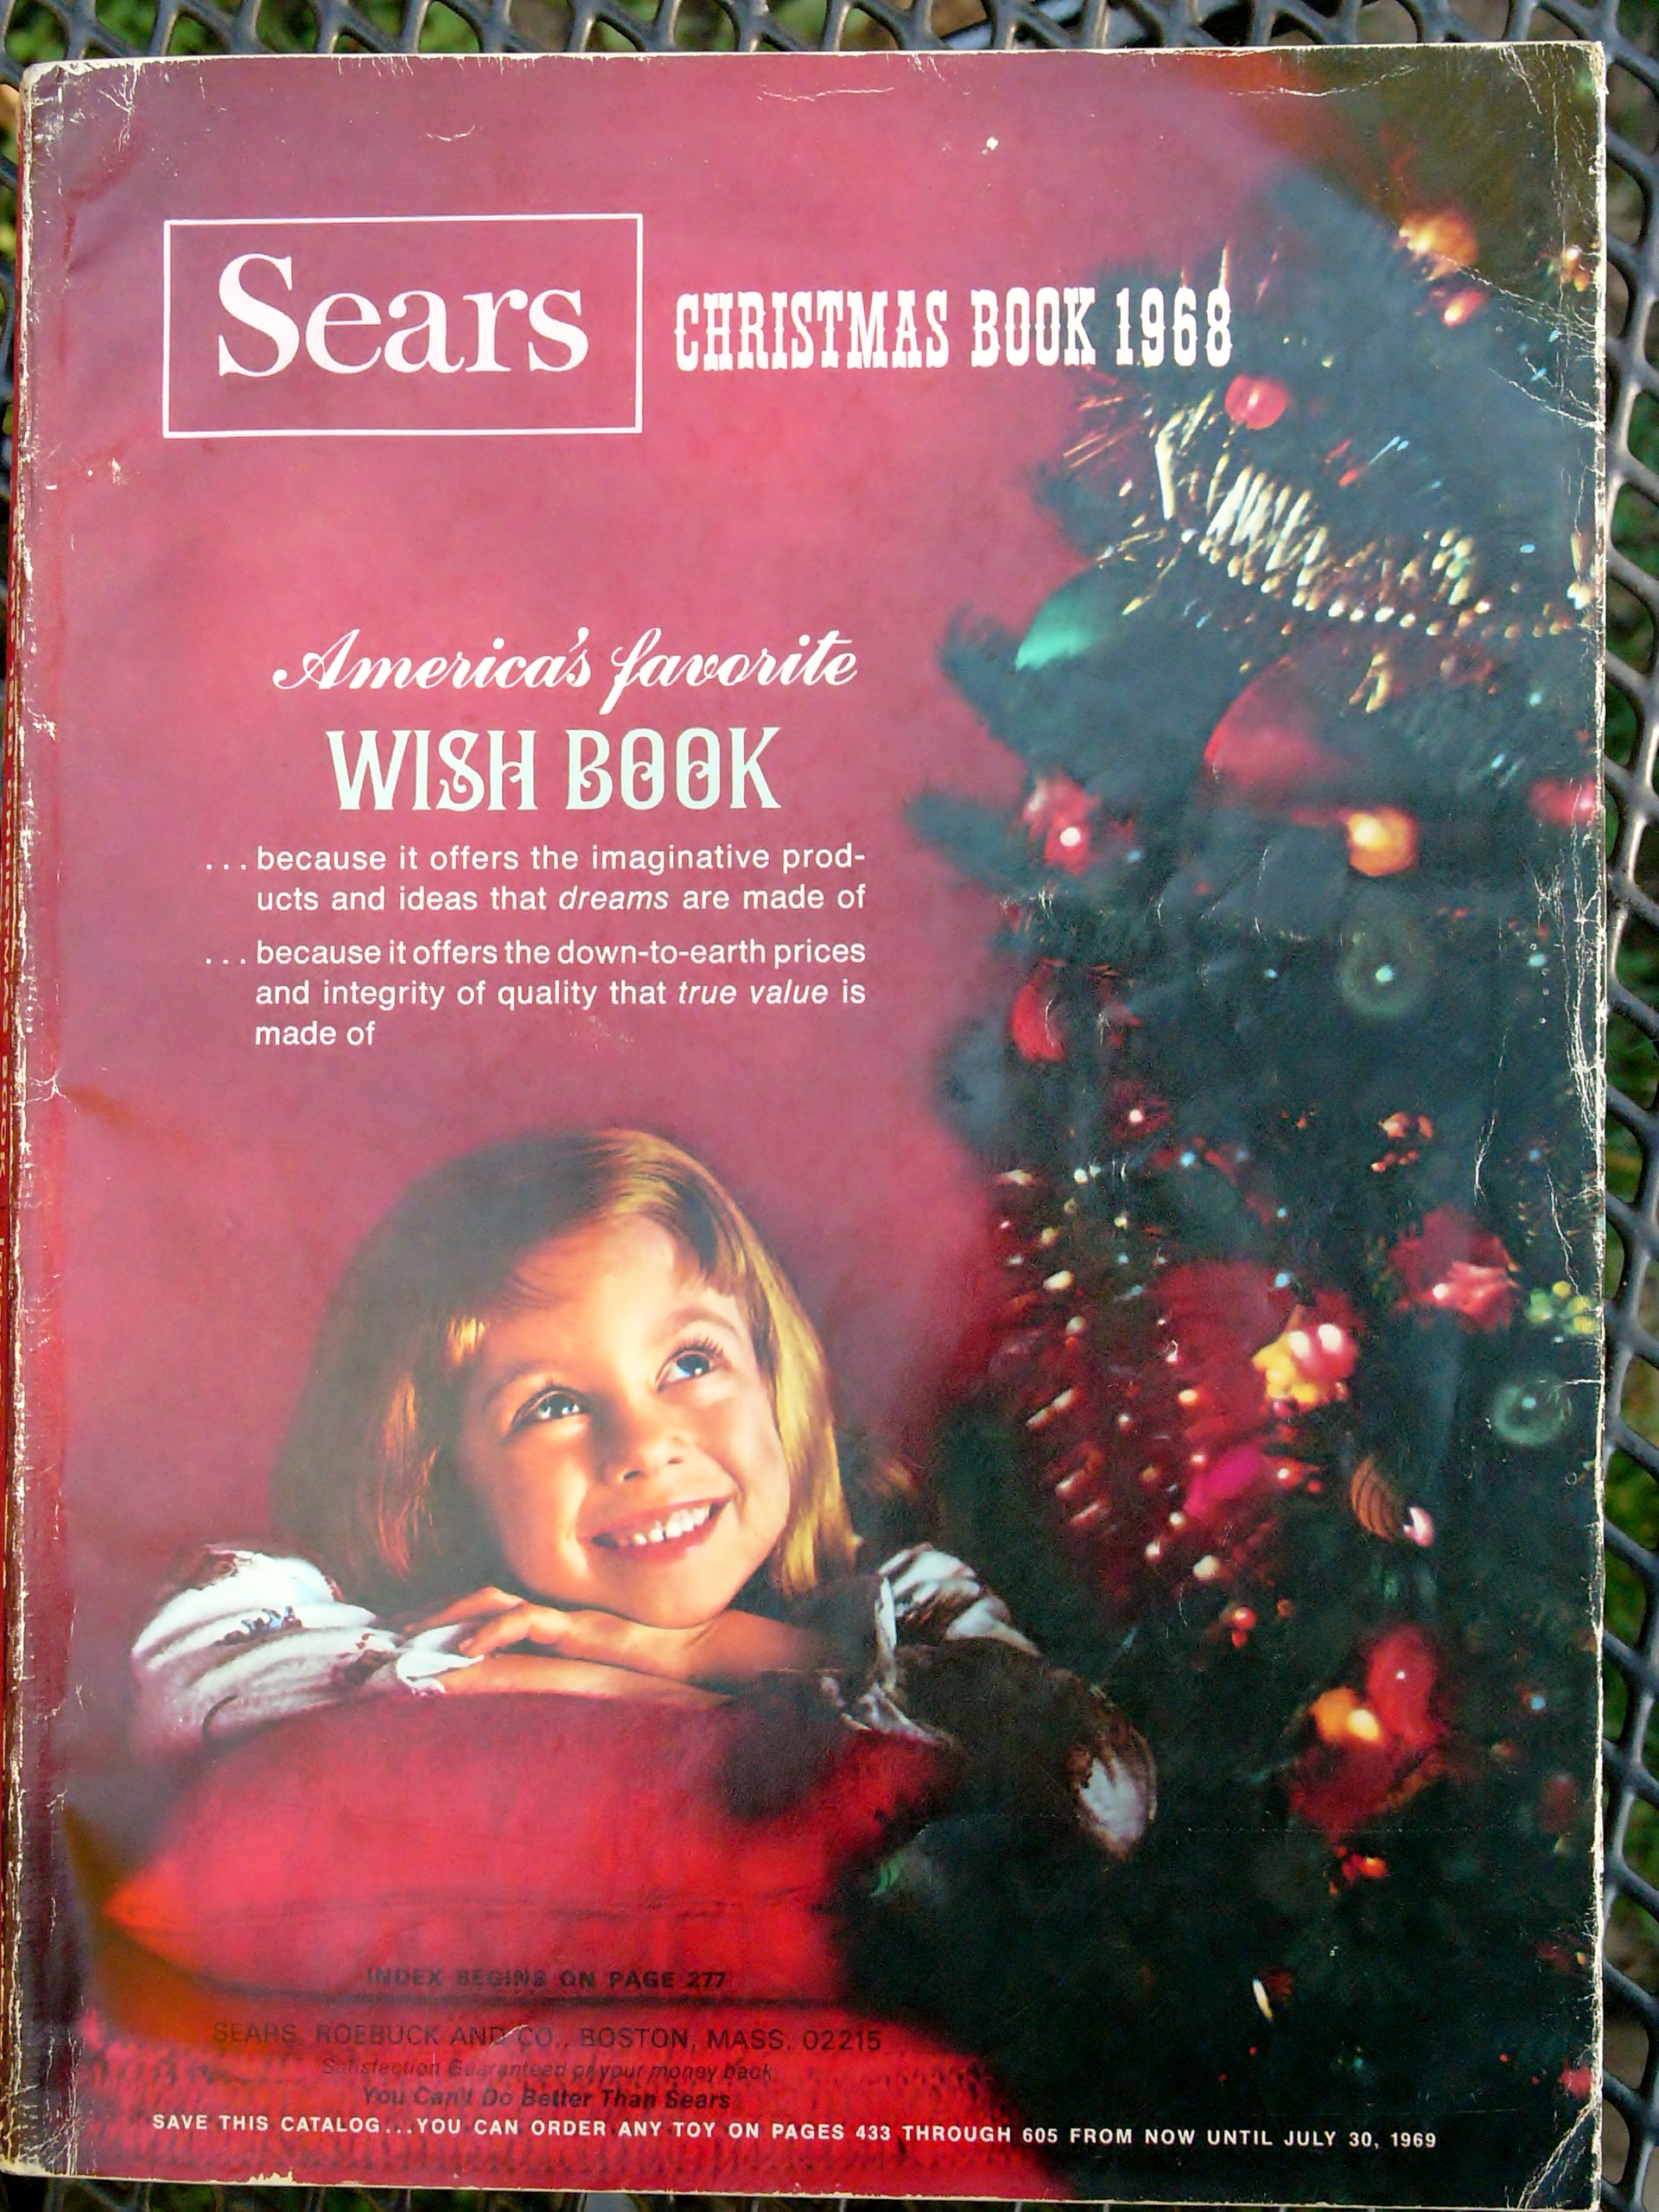 1968 sears catalog - Sears Christmas Catalog